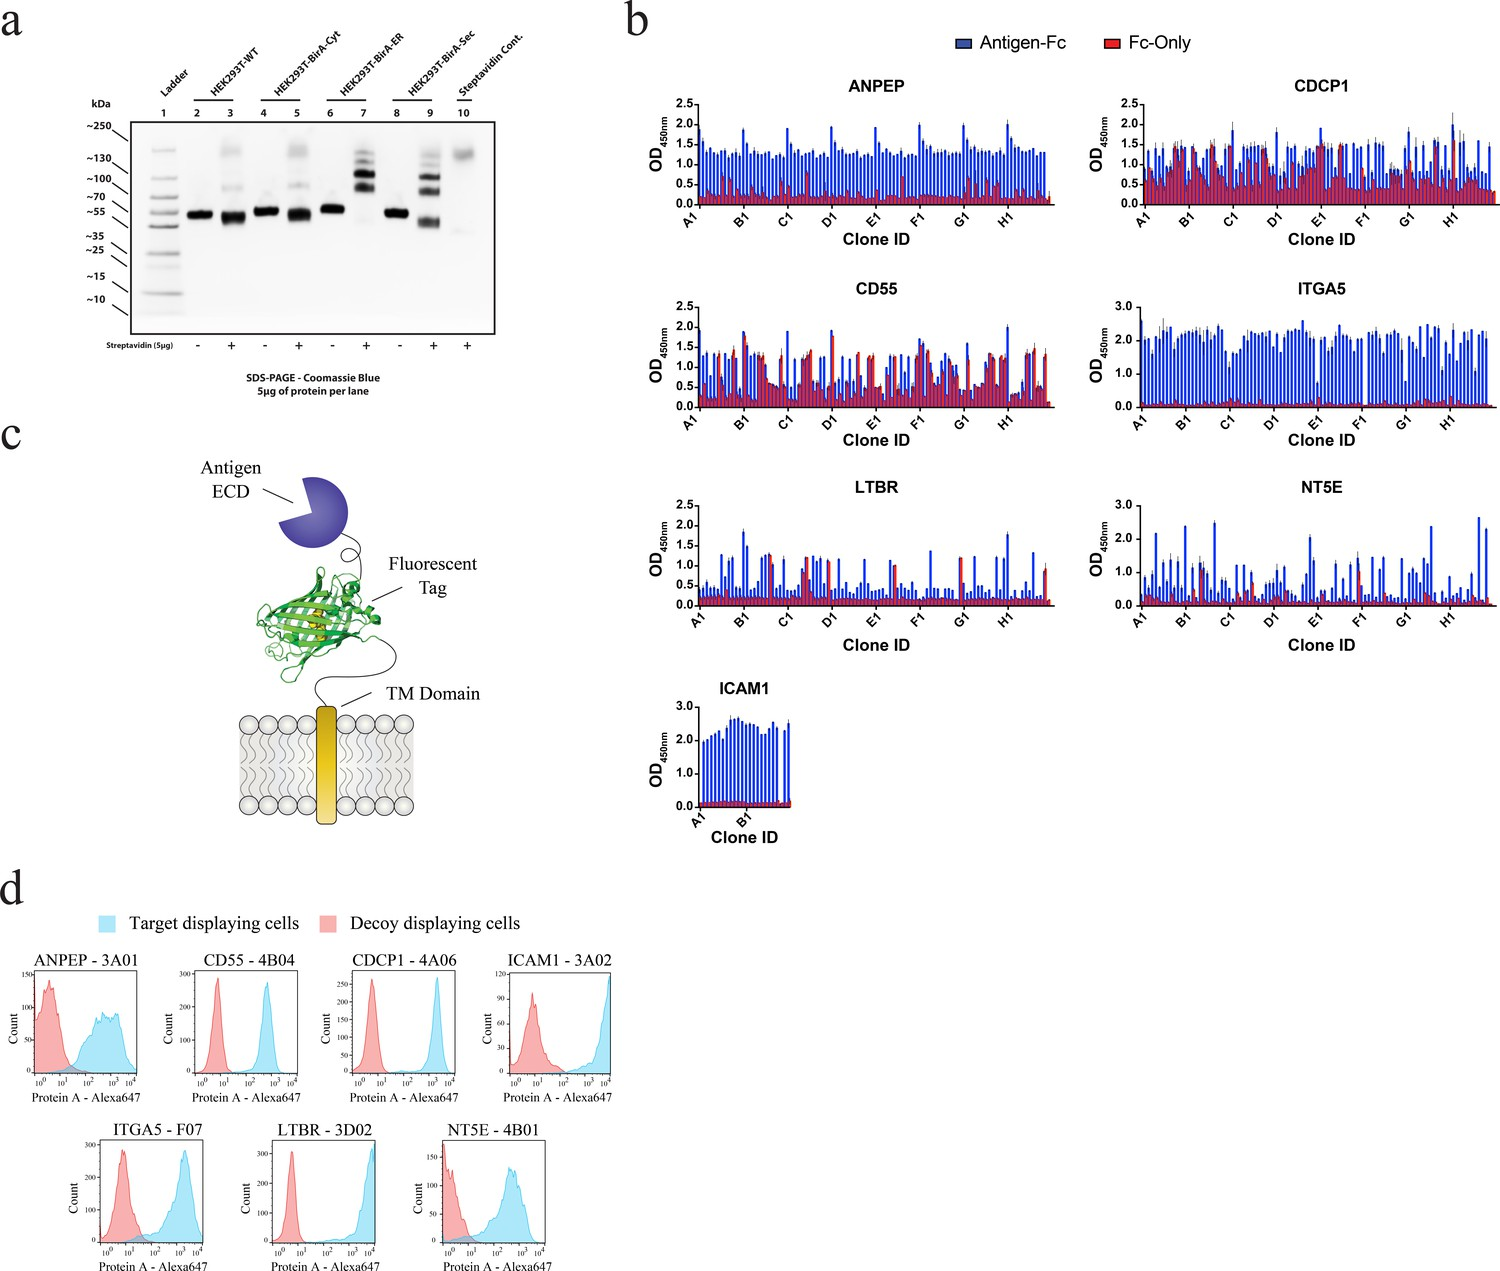 Targeting RAS-driven human cancer cells with antibodies to